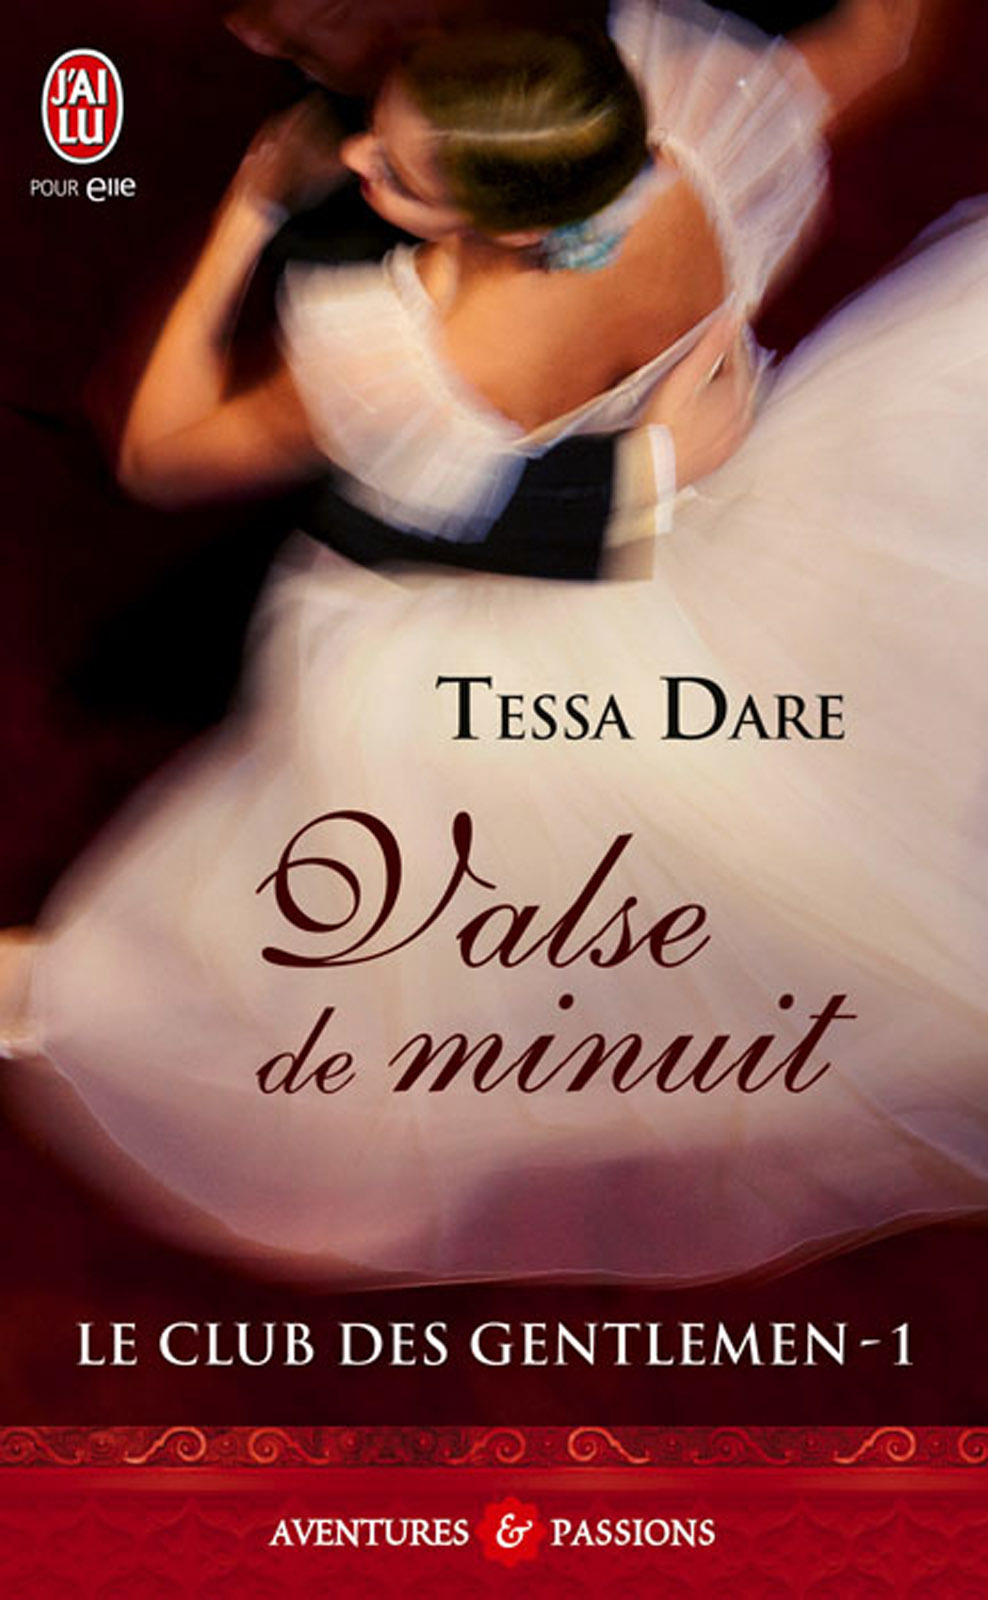 Le club des gentlemen (Tome 1) - Valse de minuit